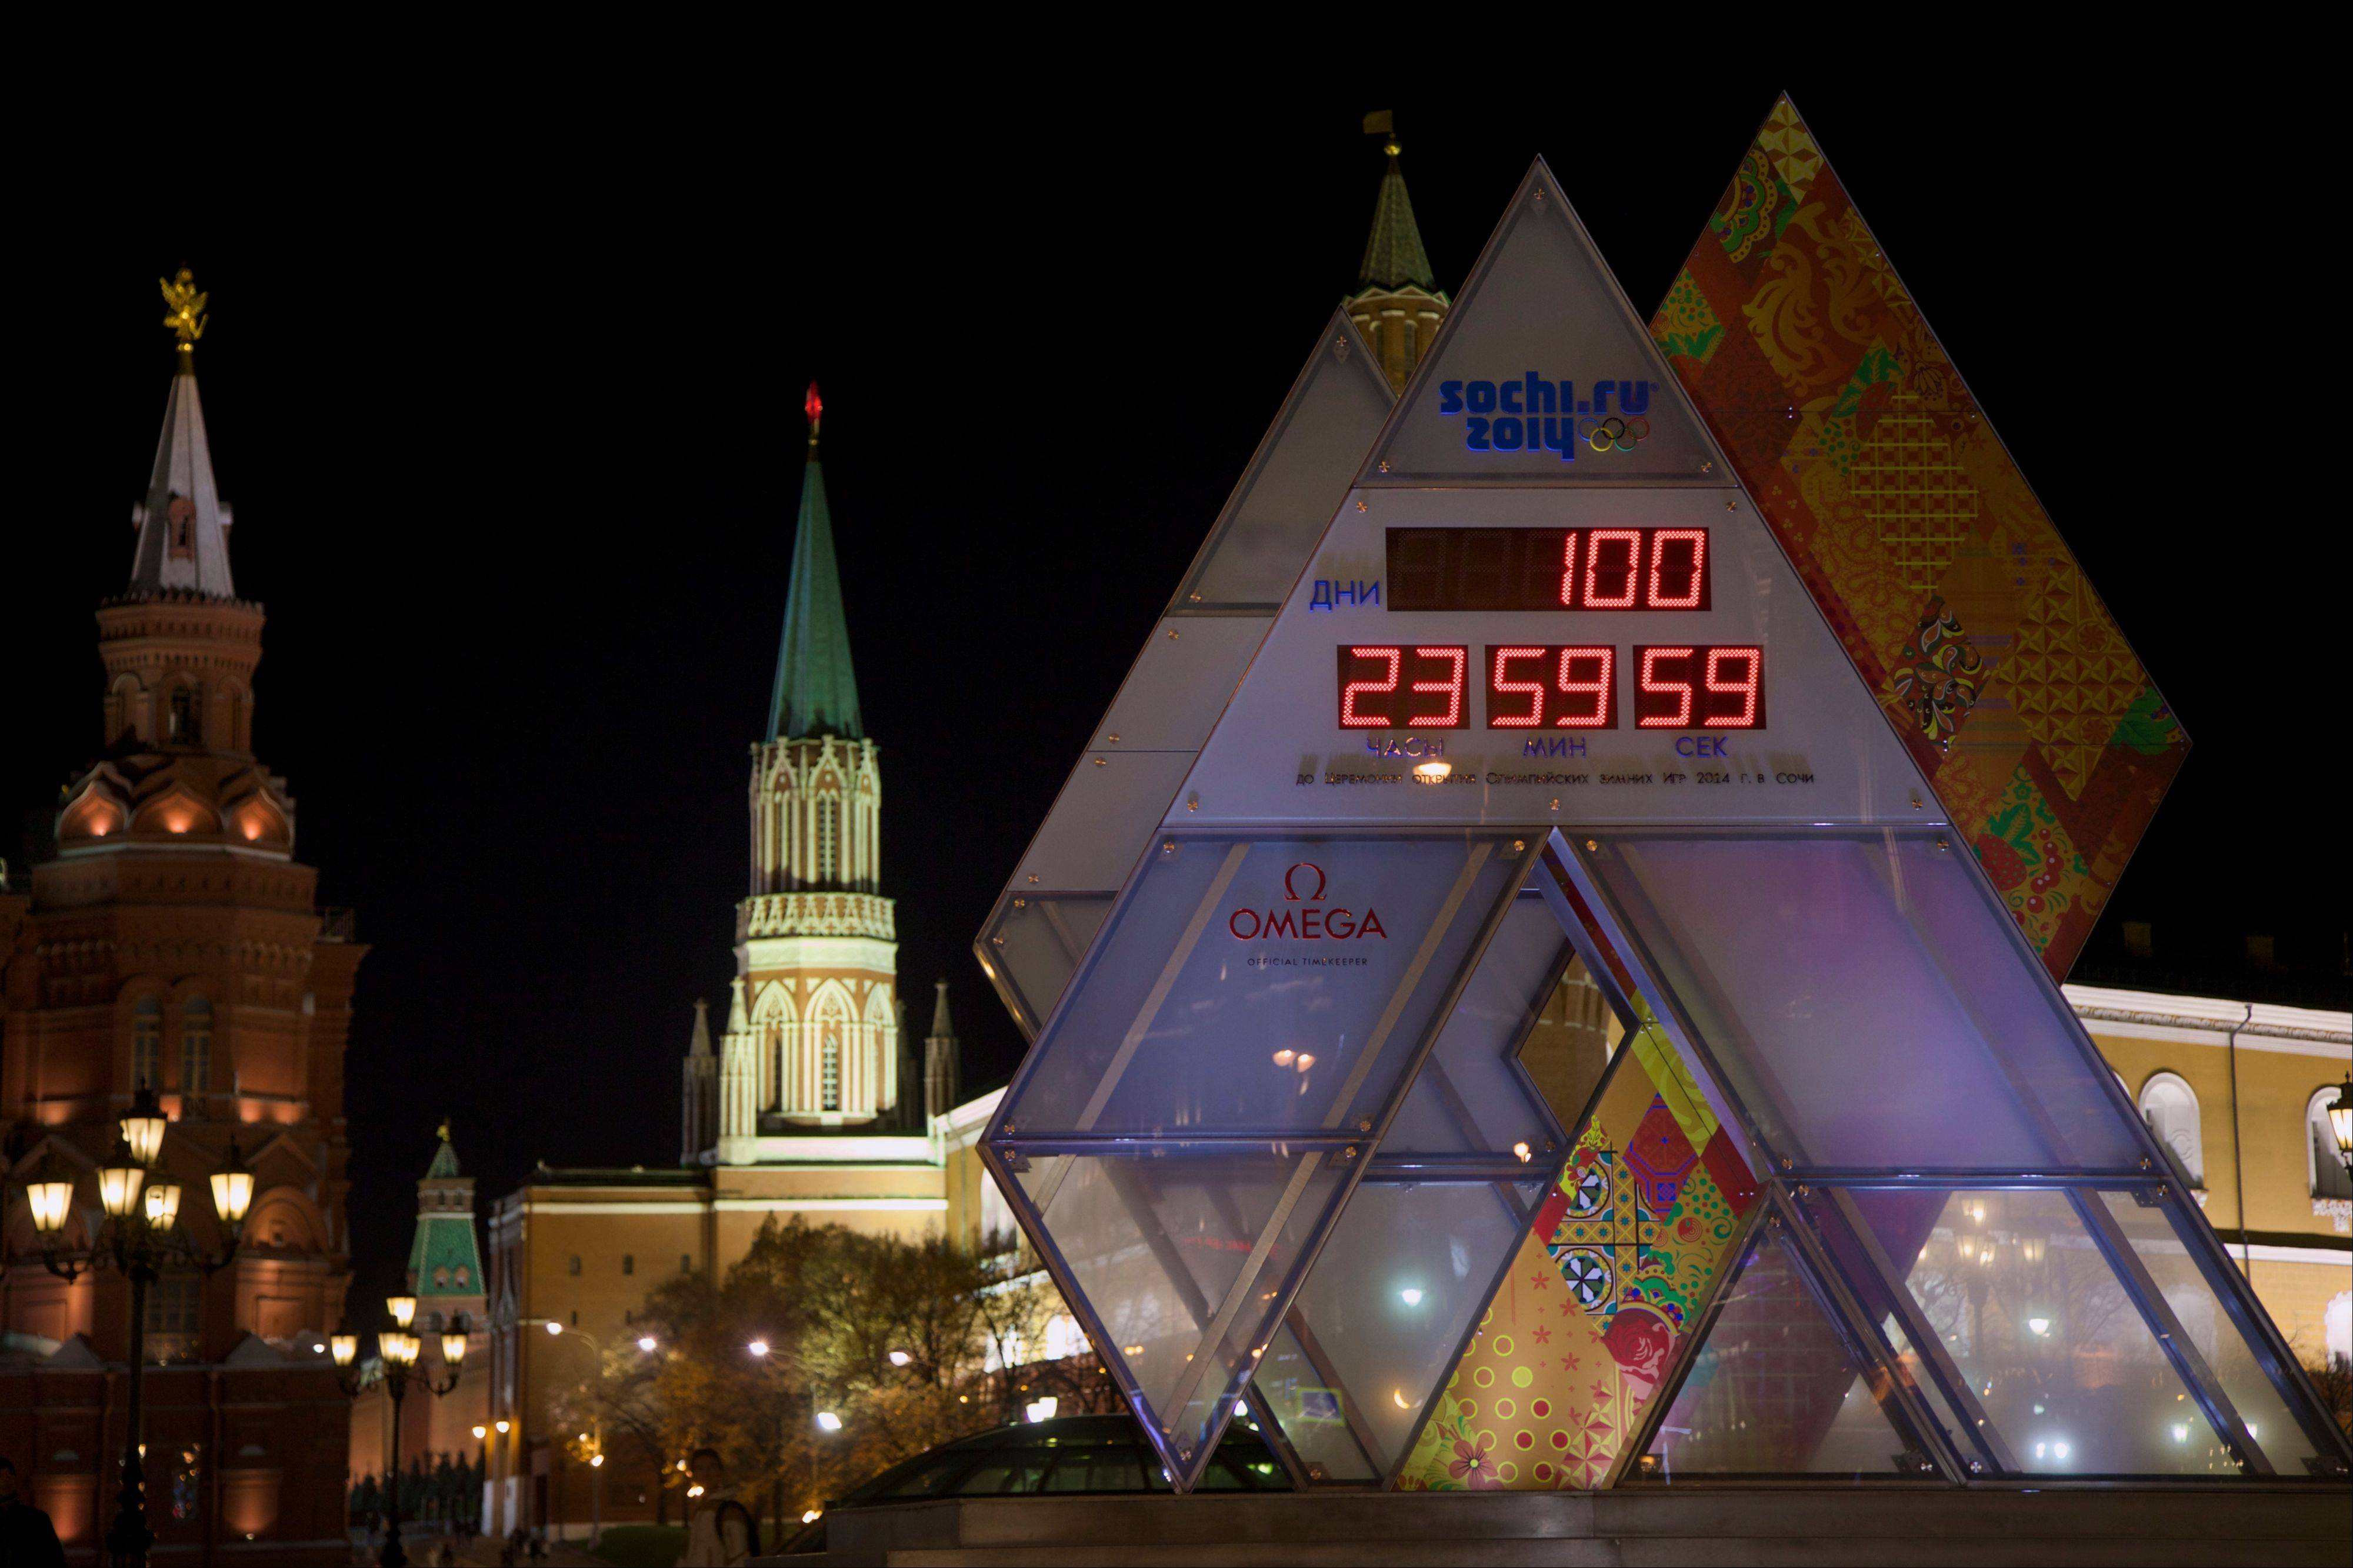 The countdown clock showing 100 days left until the start of 2014 Winter Olympic Games is on display at Manezhnaya square, with the Kremlin wall and towers at the background, in Moscow on Tuesday.